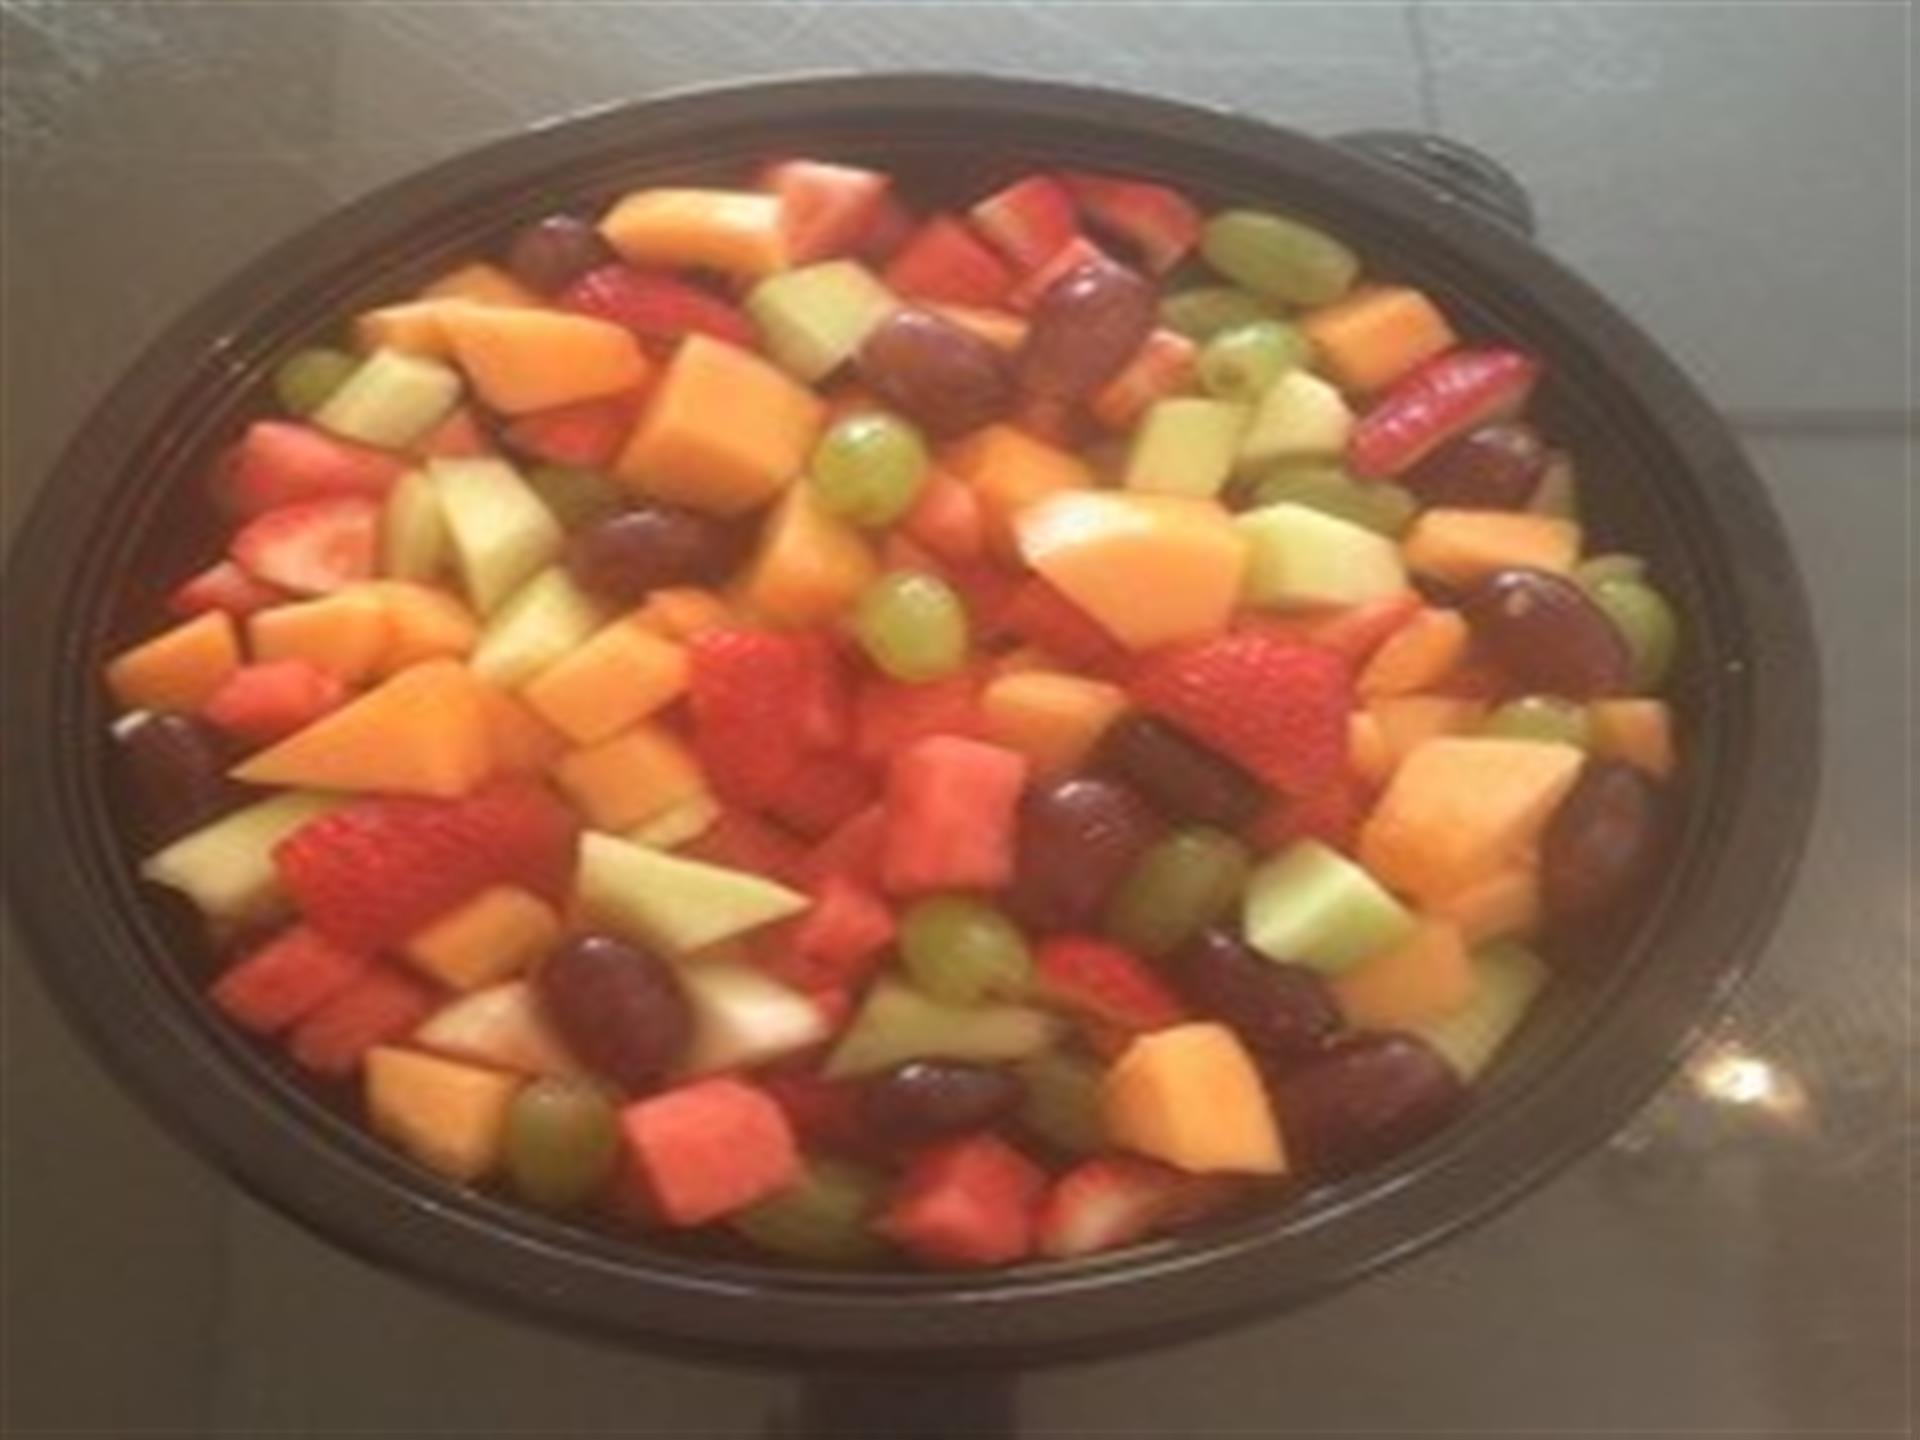 Bowl on fruit salad